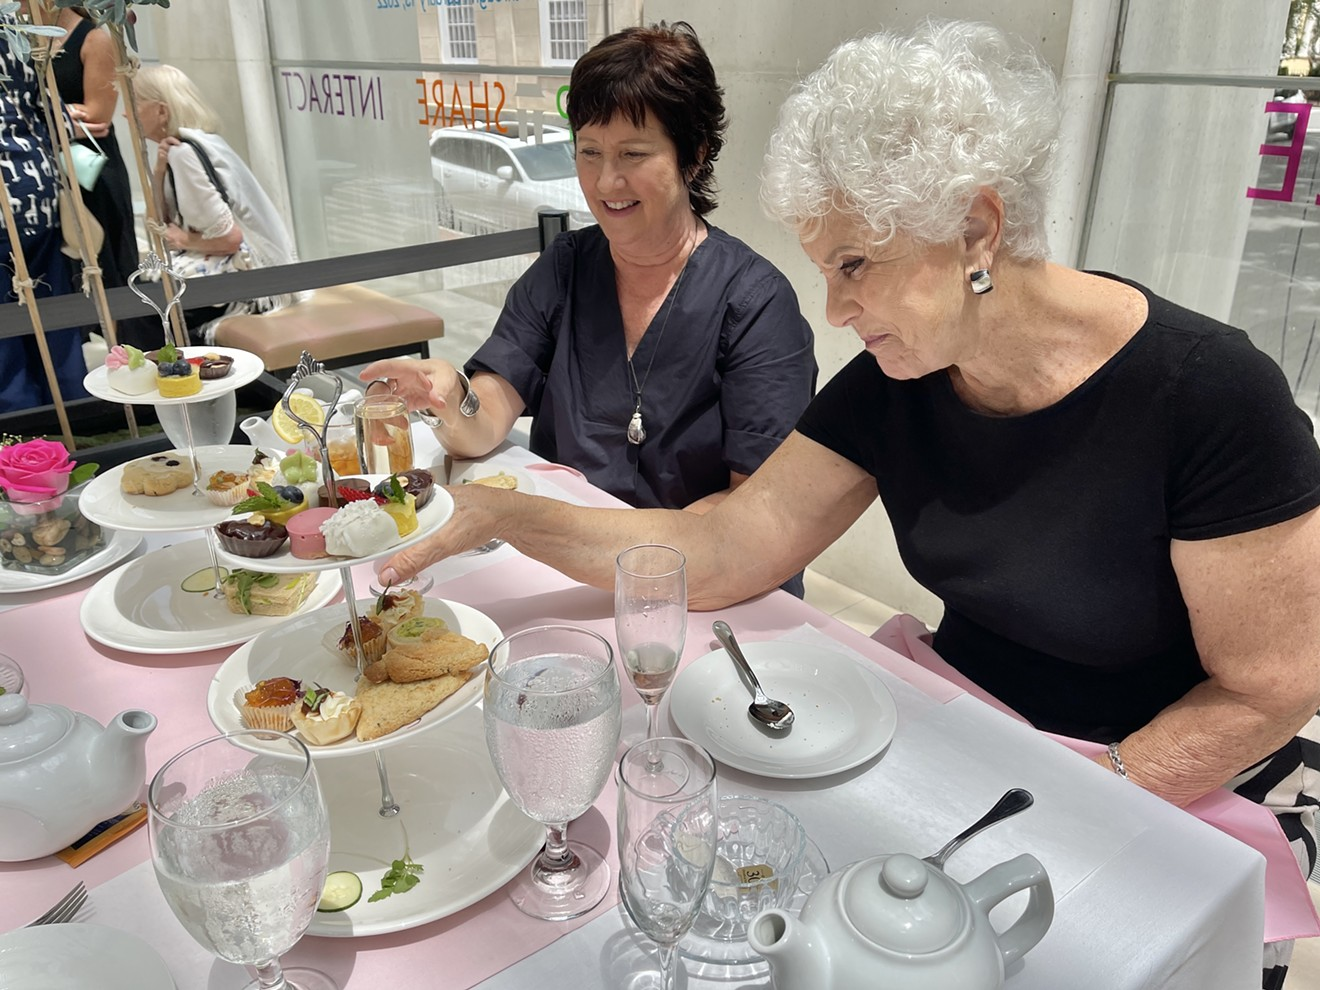 Guests help themselves to some tea time snacks during Afternoon Tea at Joe's at the Jepson July 21 at the Telfair's Jepson Center for the Arts.